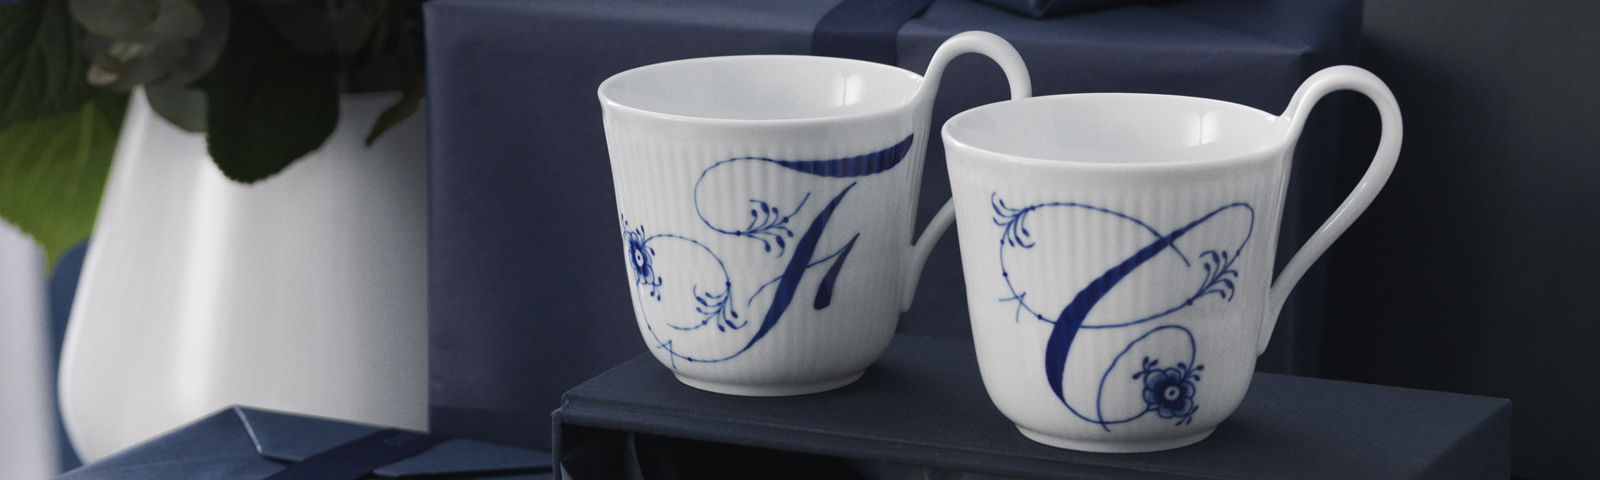 Each hand painted letter on the Alphabet mugs is adorned with a flower and two palmettes.